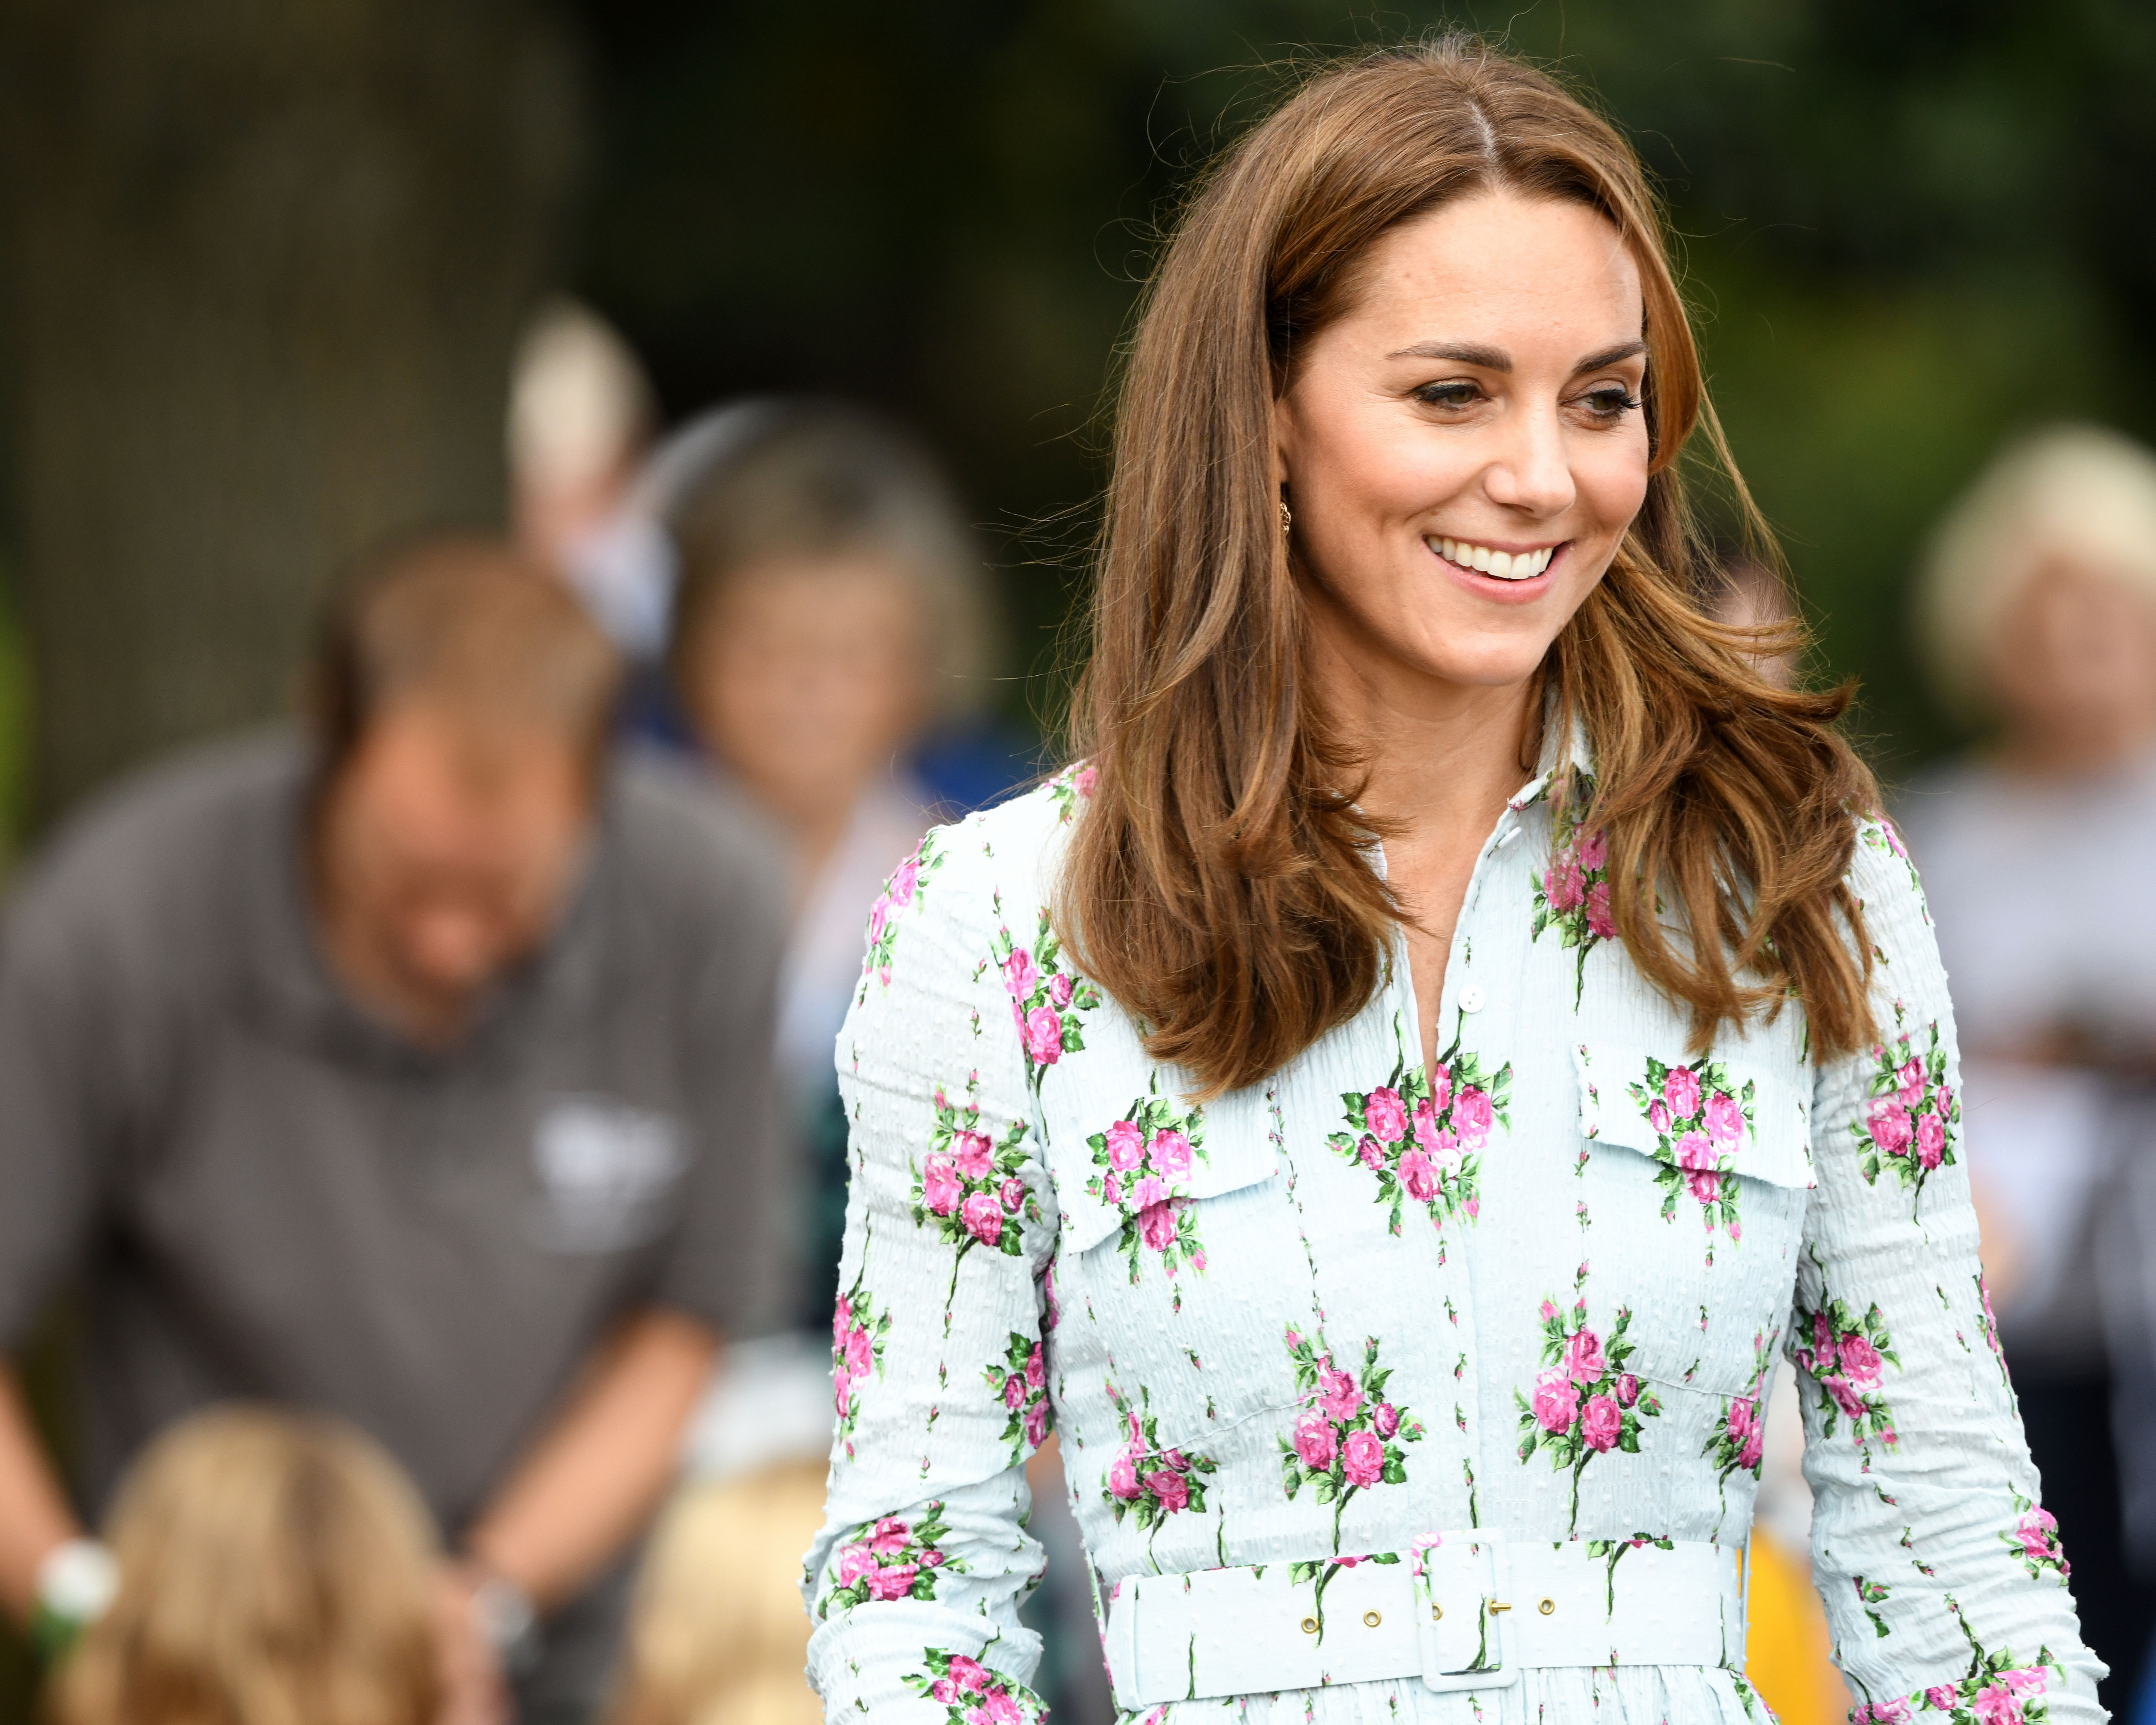 Duchess of Cambridge Kate Middleton and Tennis Super Star Emma Raducanu Hit the Courts for a Royal Match! – The Duchess of Cambridge, Kate Middleton, met up with the 18-year-old U.S. Open Champion Emma Raducanu for an informal match of tennis.